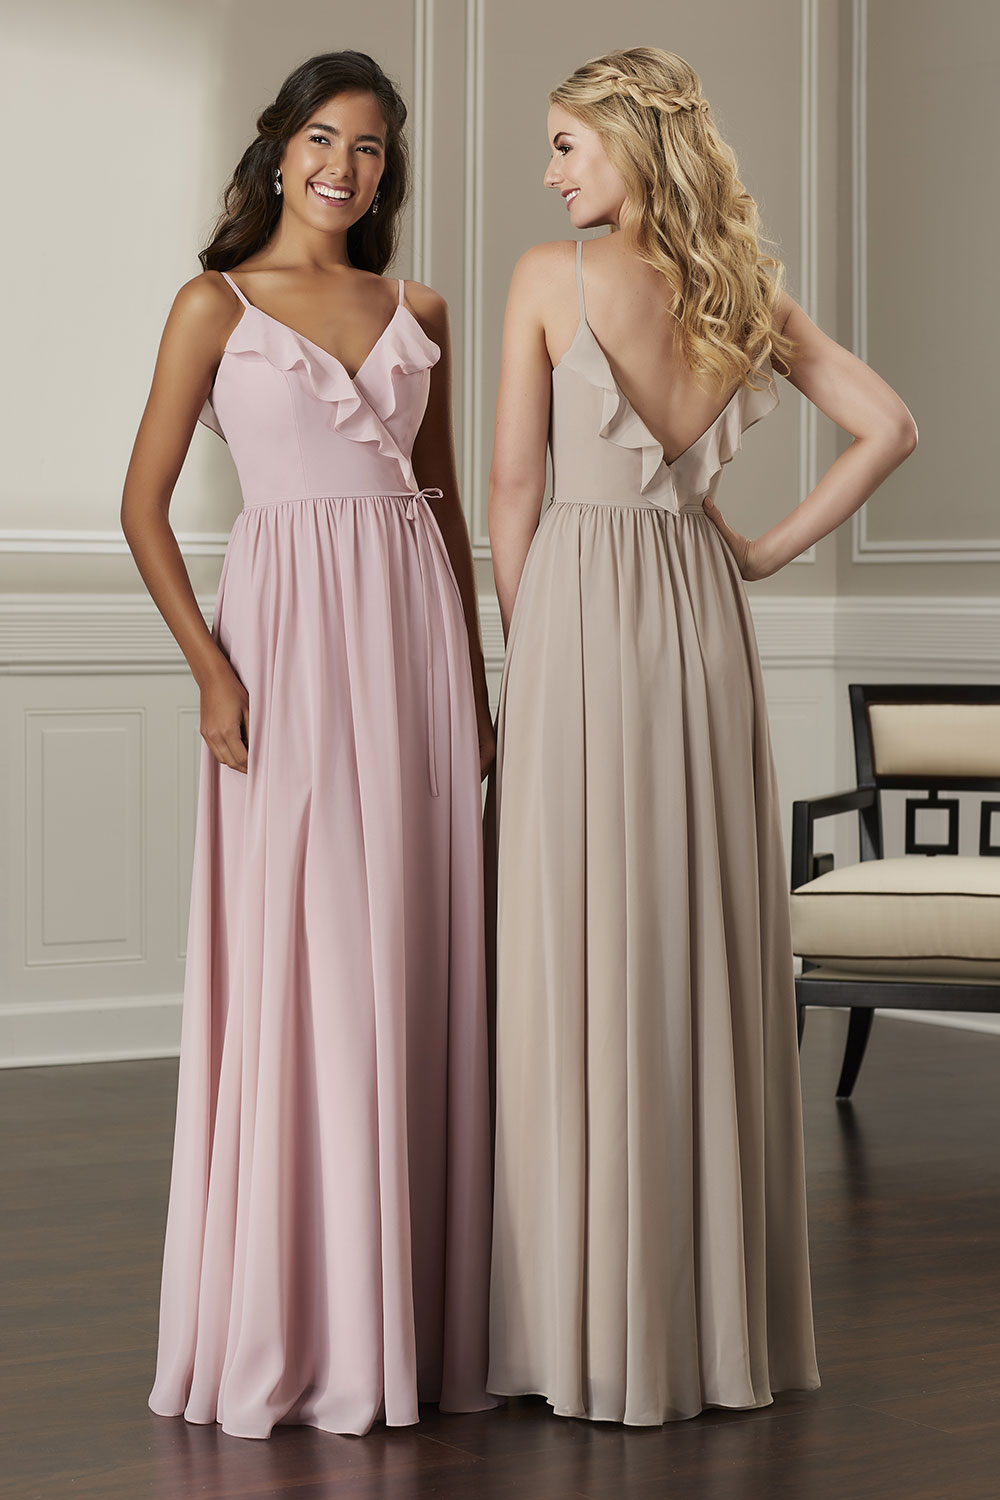 bridesmaid-dresses-jacquelin-bridals-canada-26833